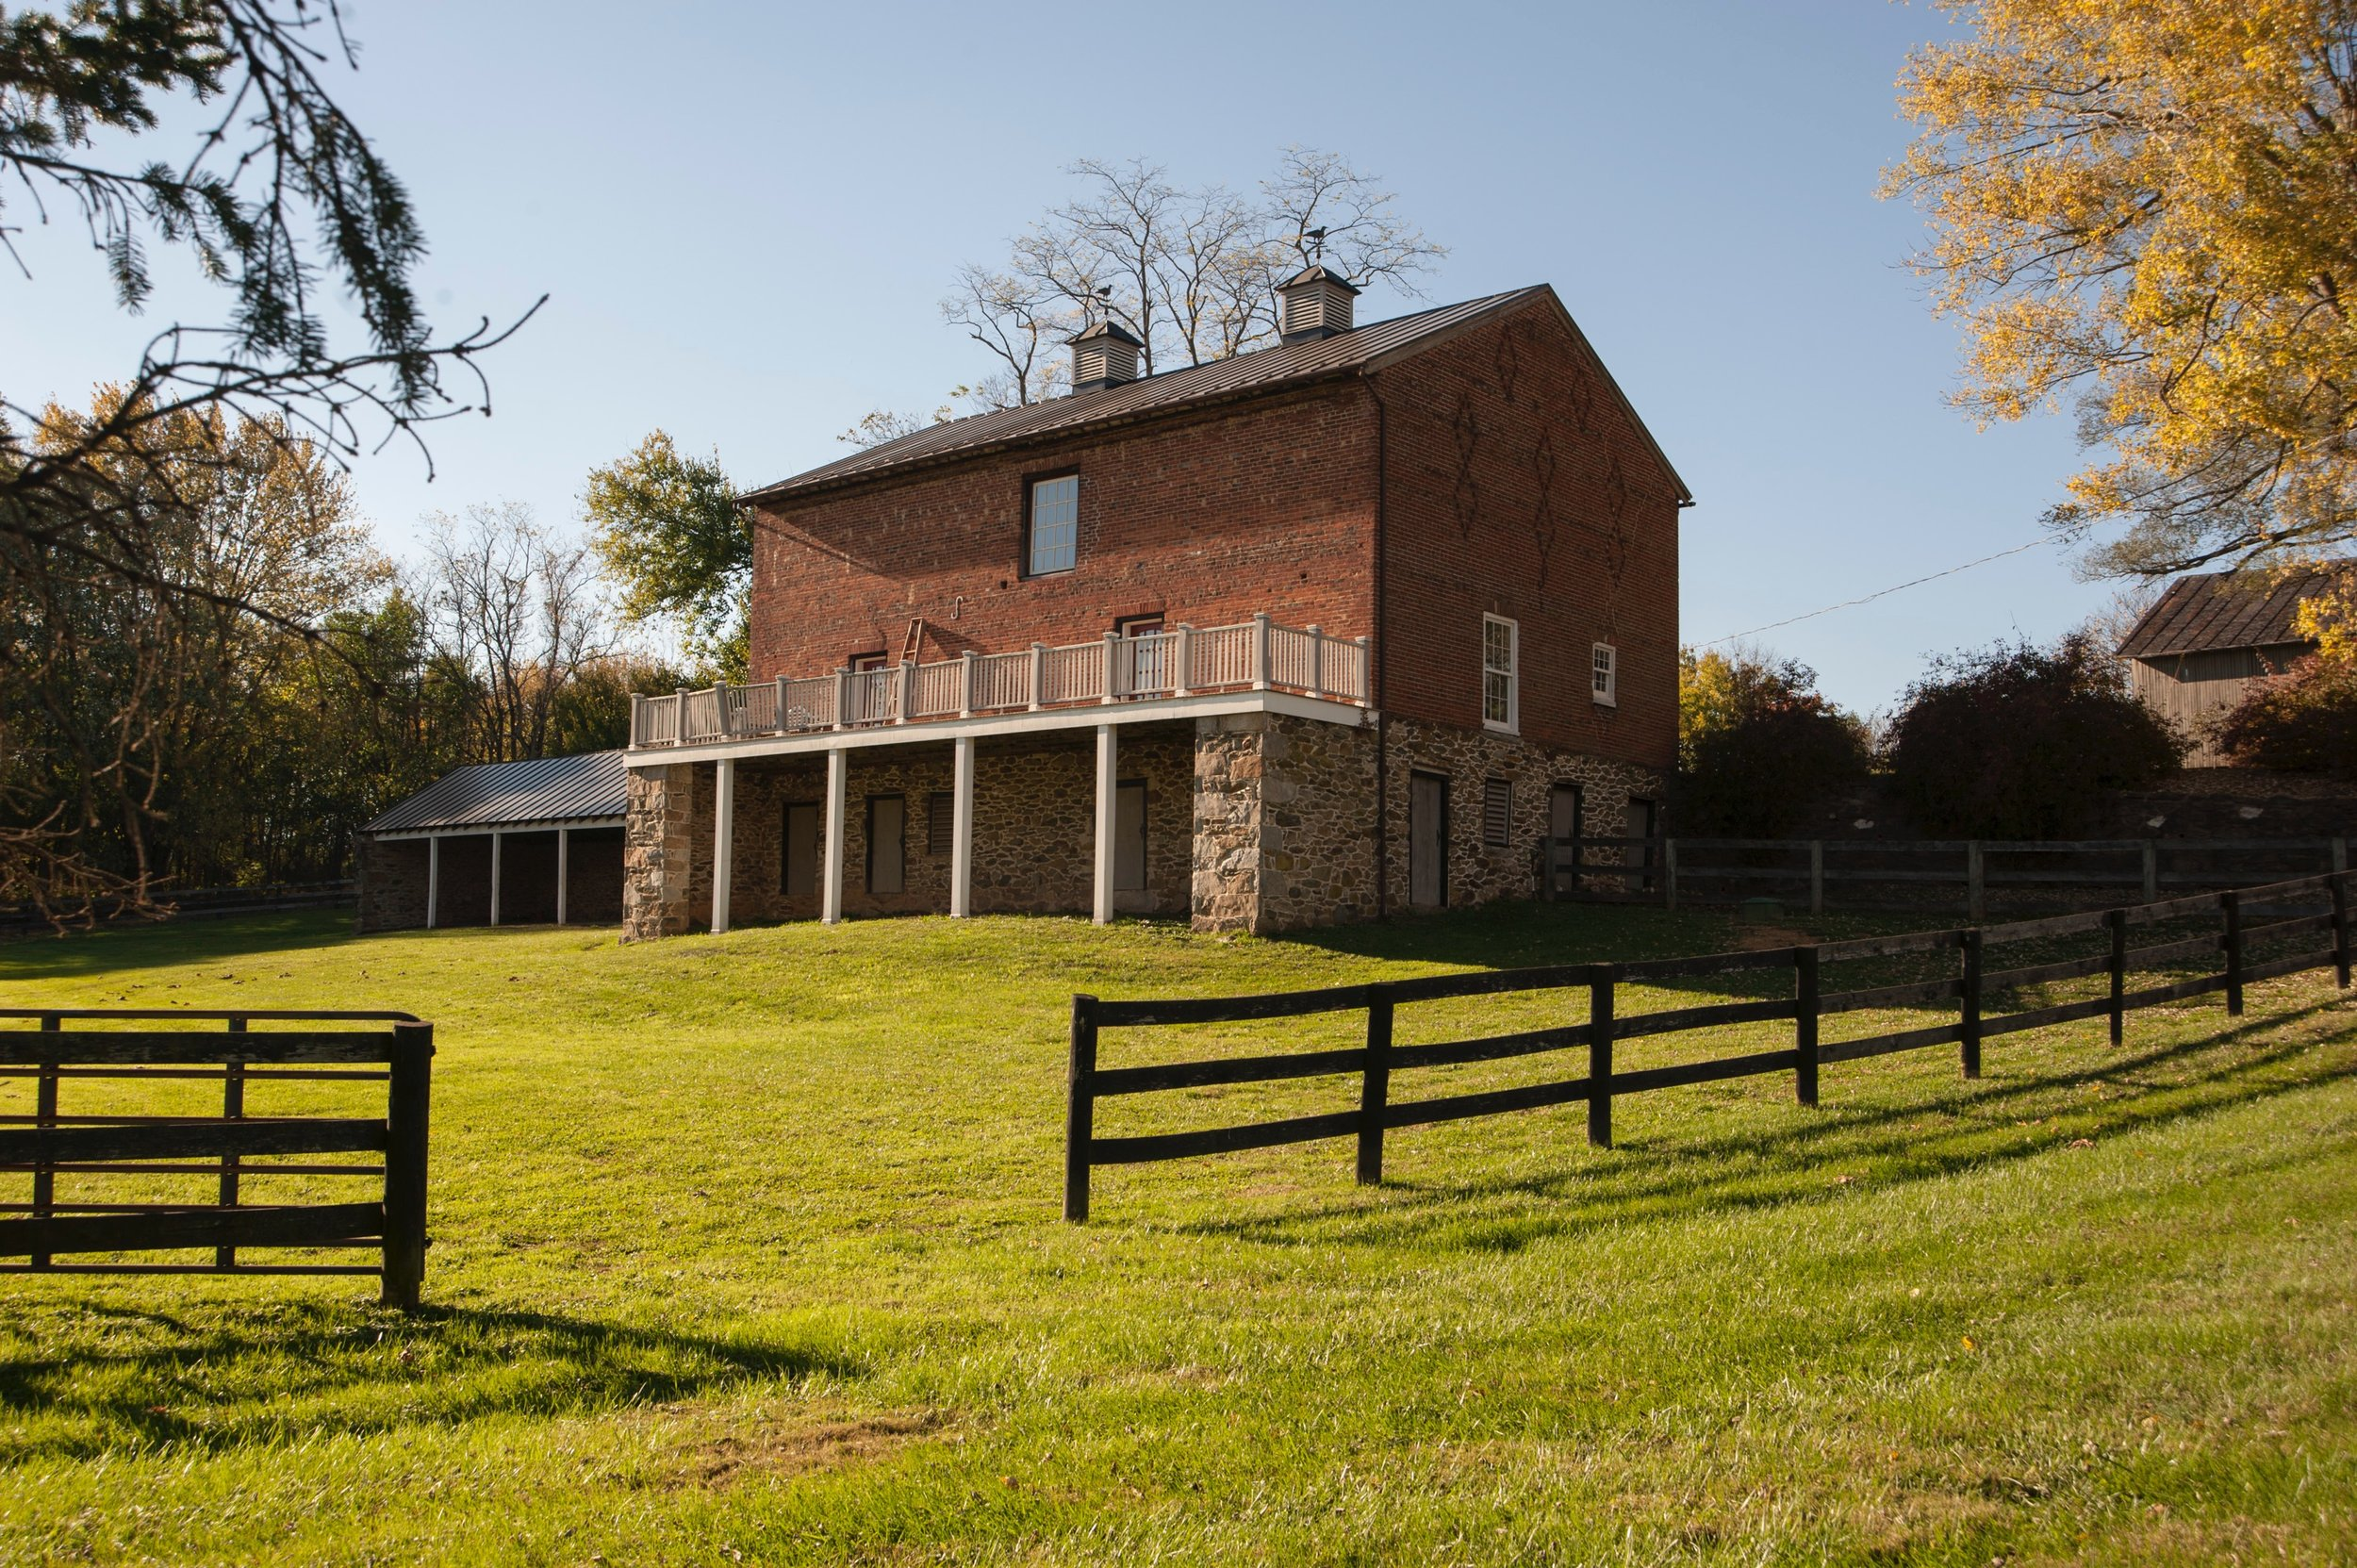 The three-level side of the brick bank barn.